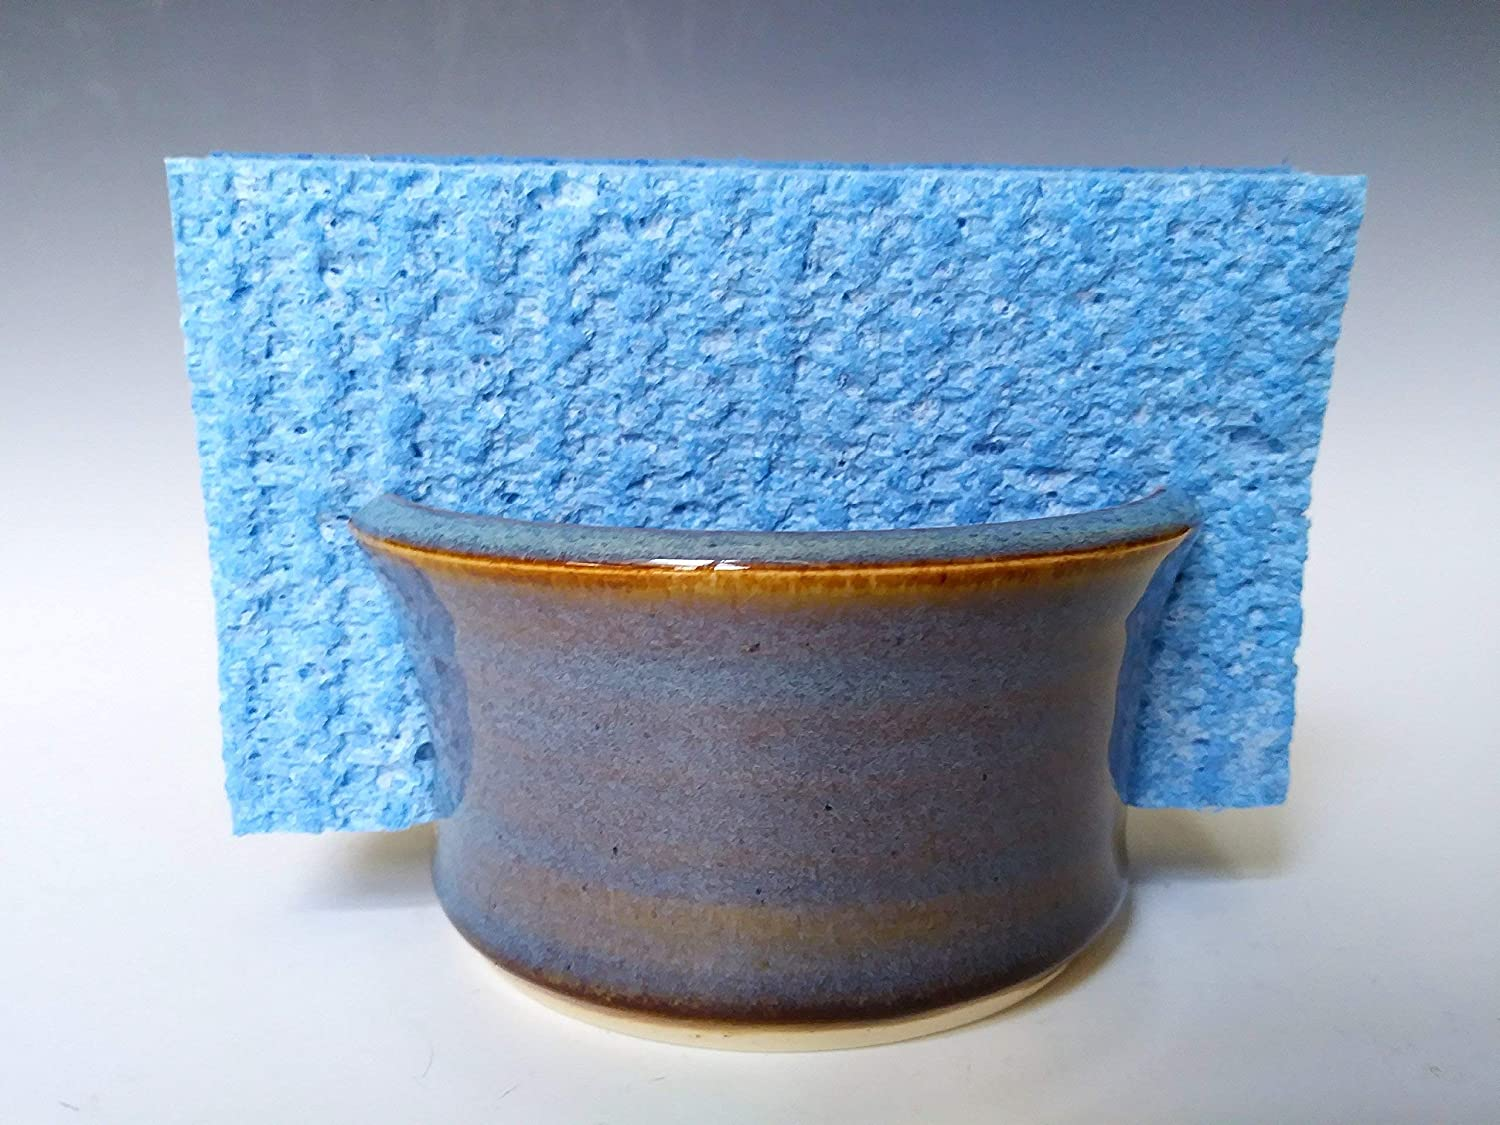 Sponge Holder/Sink Caddy ~ Ocean Blue Swirl ~ Handmade Stoneware Ceramic